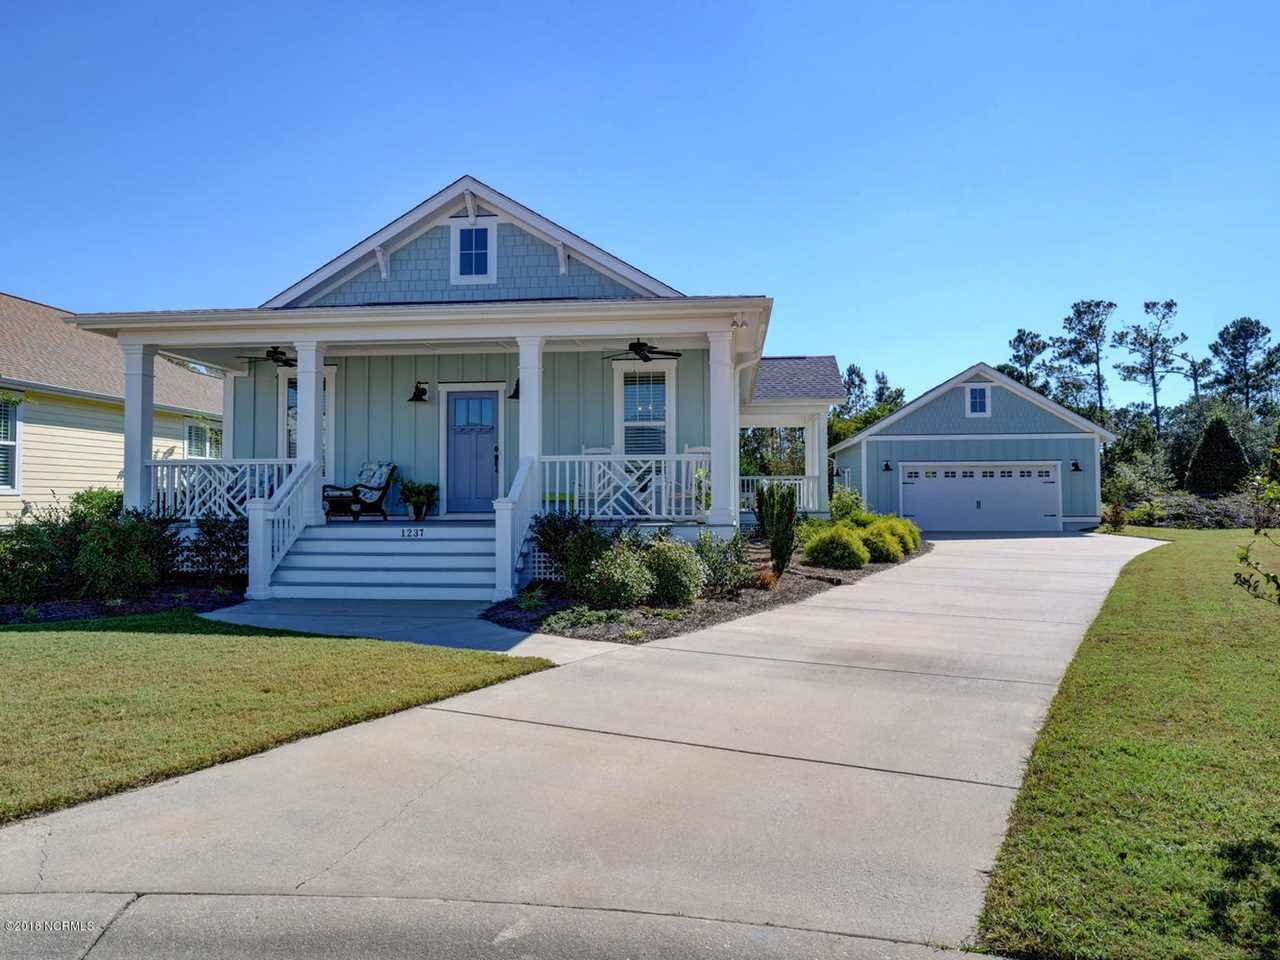 Home For Sale At 1237 N Caswell Avenue, Southport NC in Cades Cove Photo 1